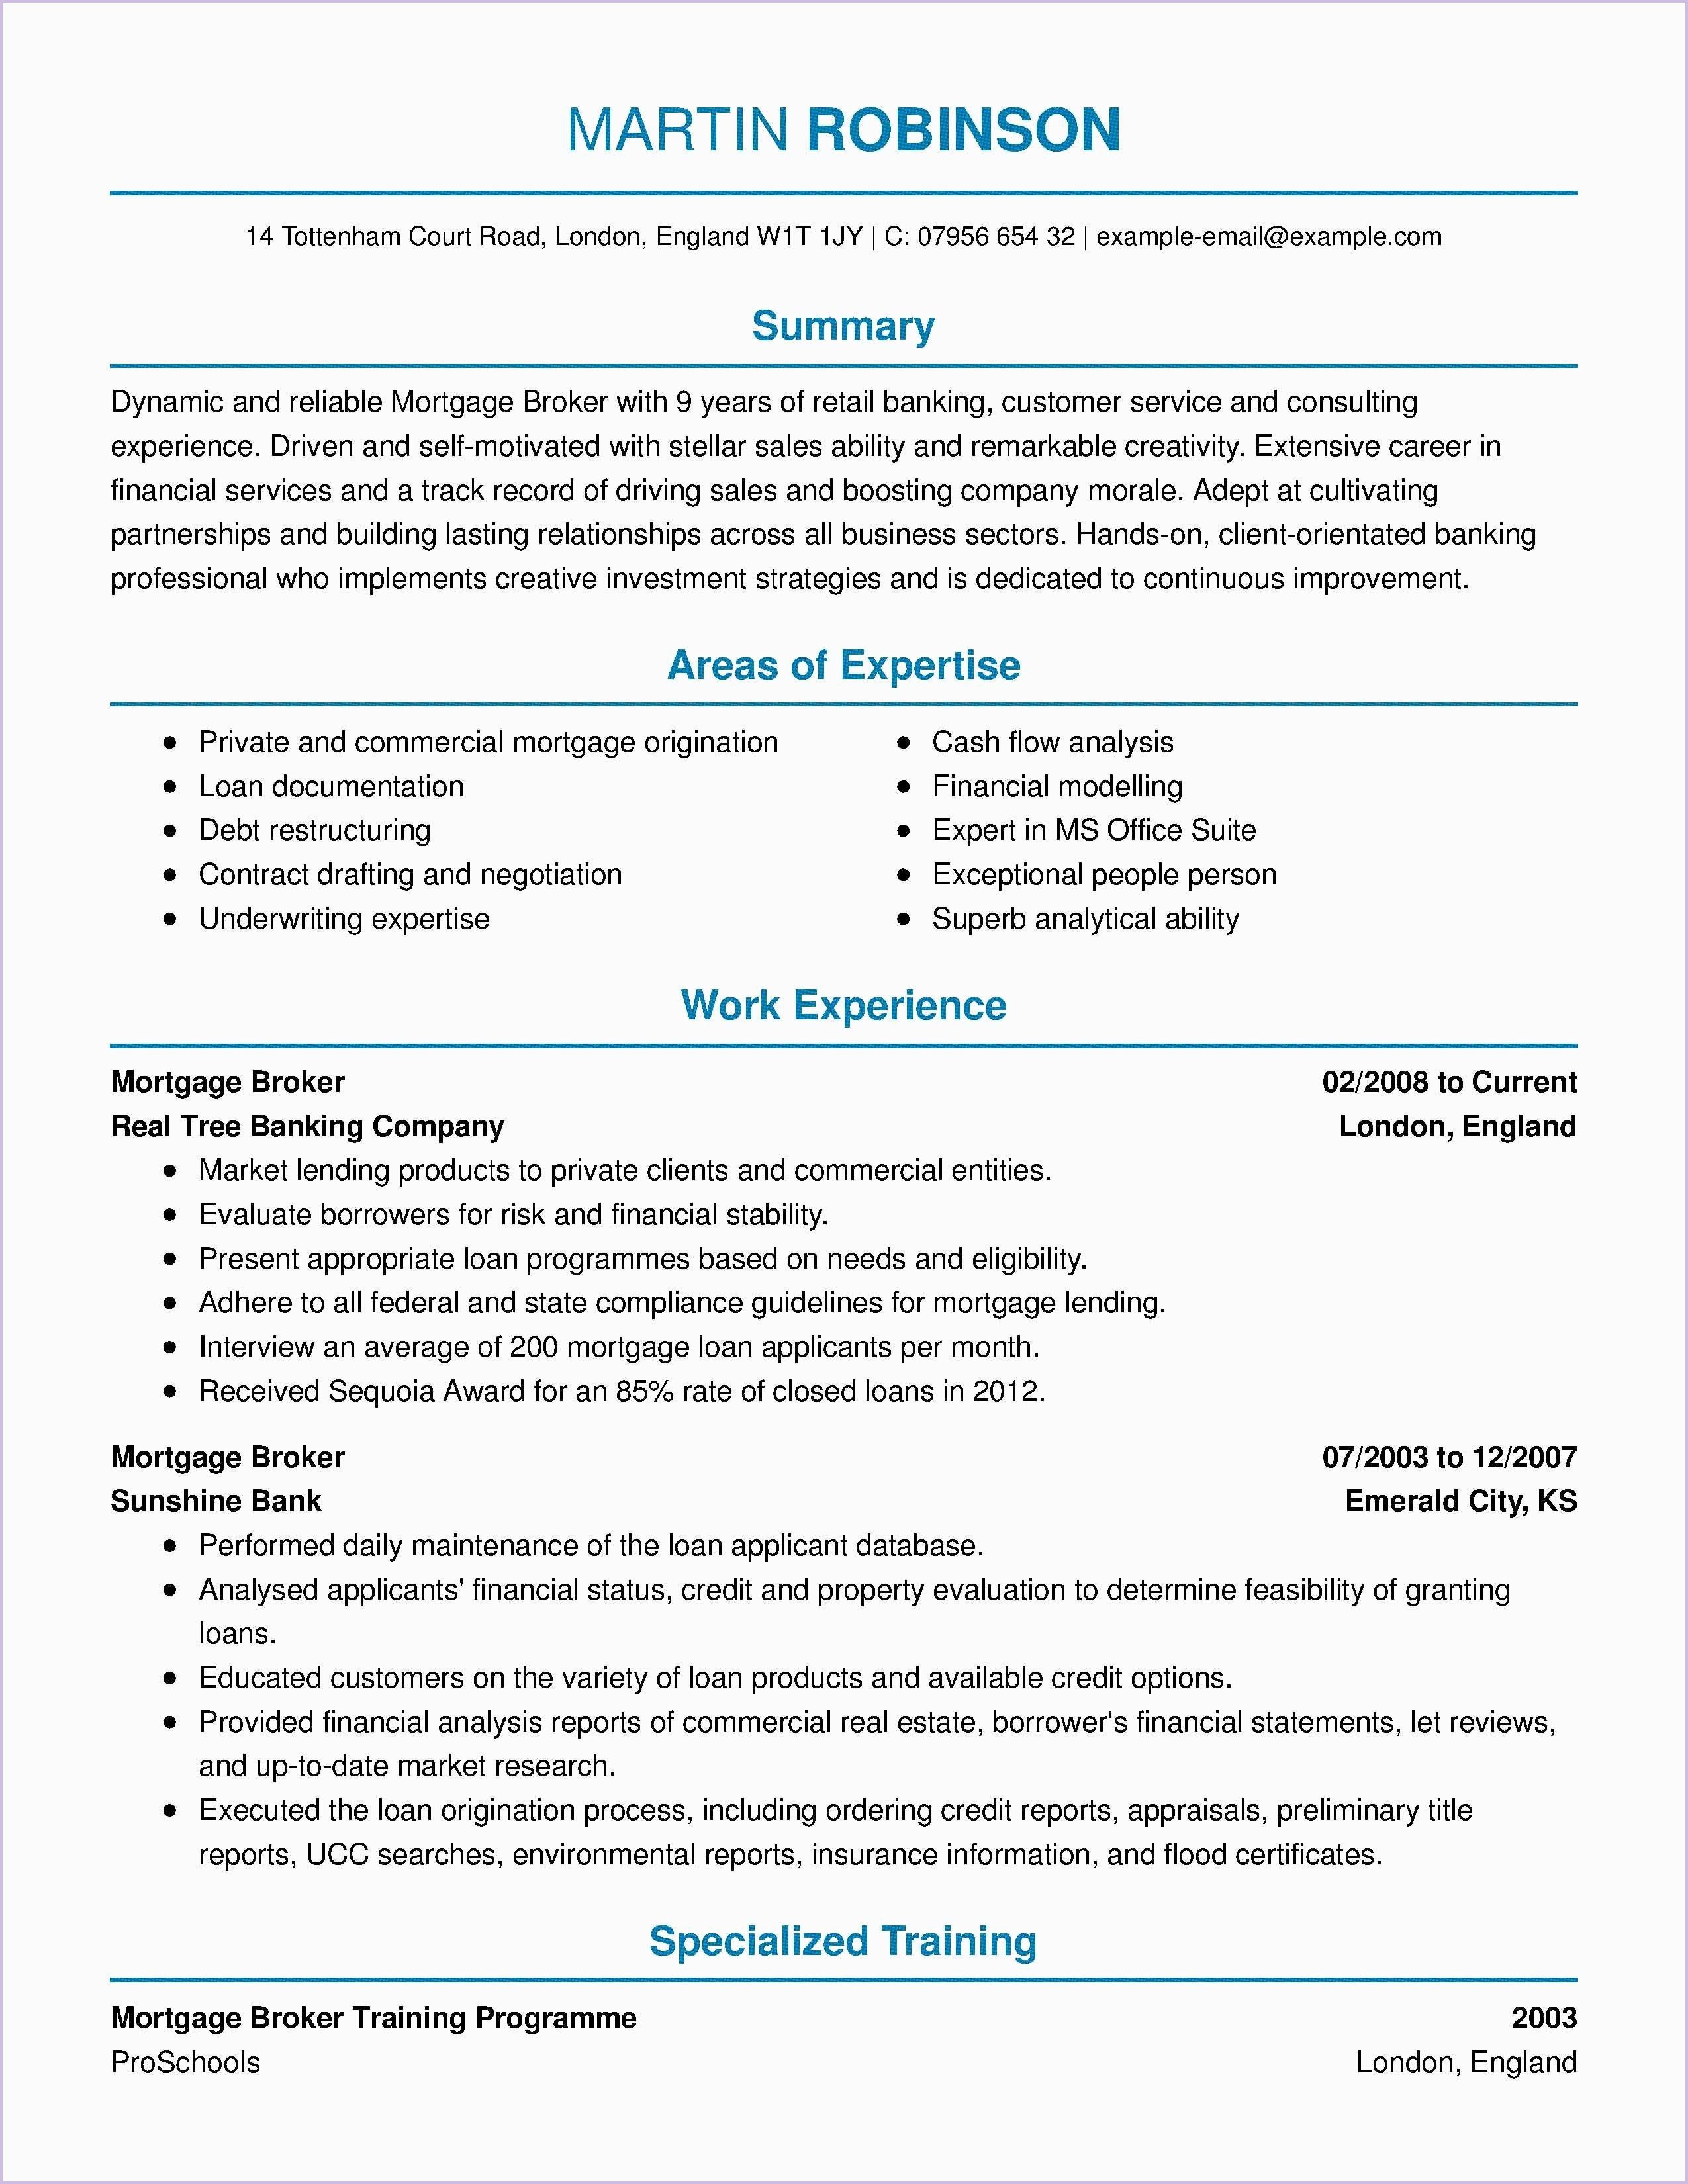 Pin By Sdp Yt On Resume With Images